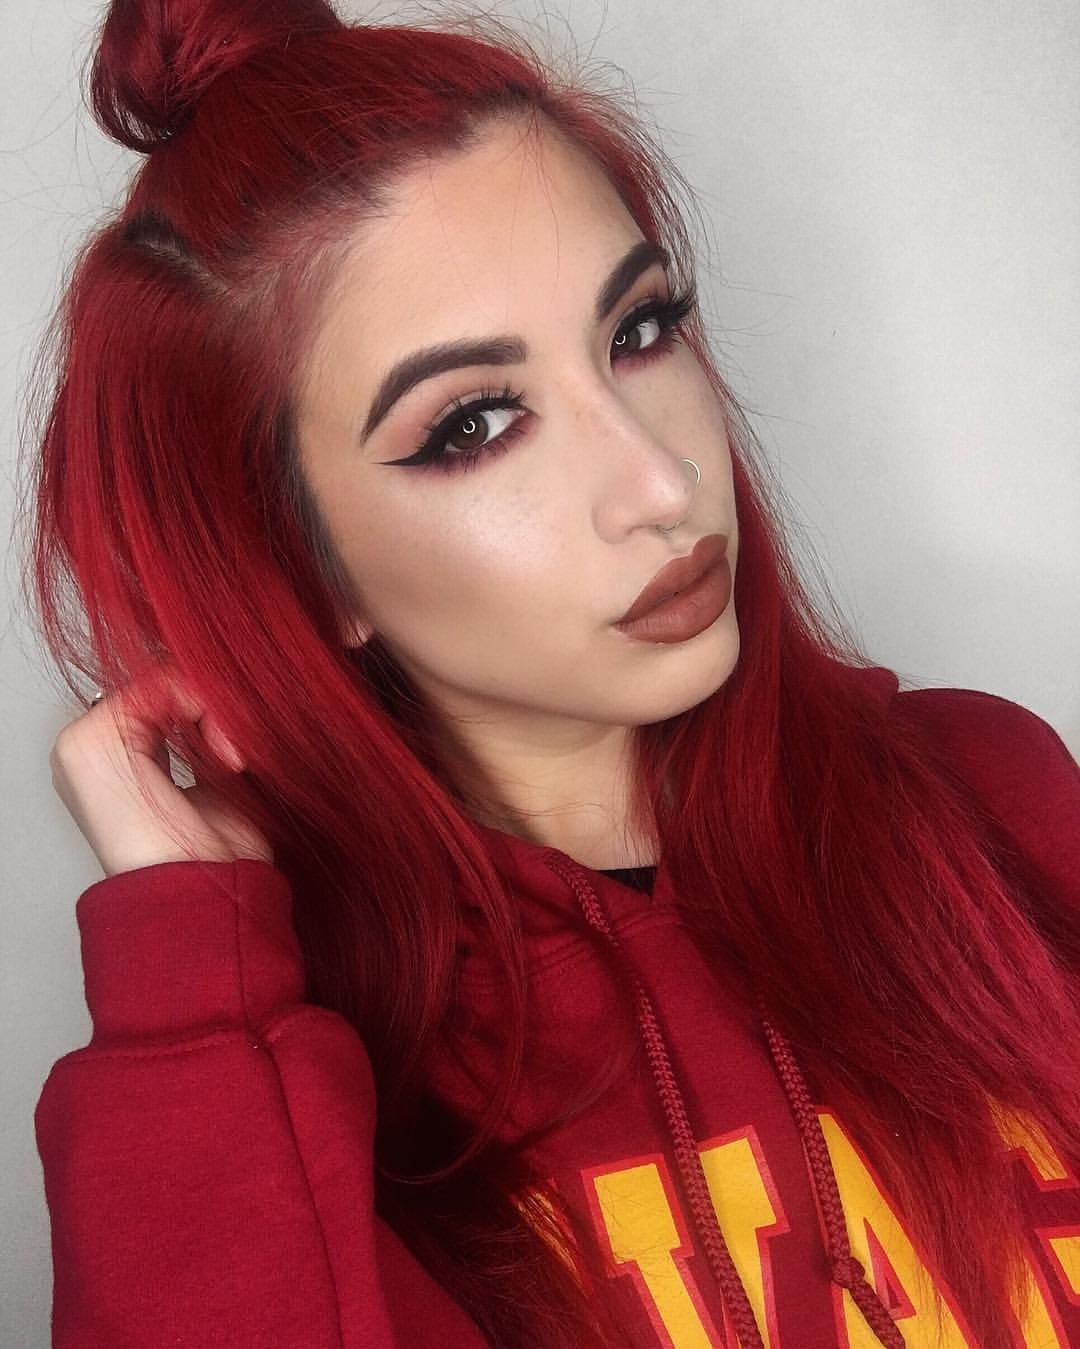 207 Likes 9 Comments Lexi Lazaro Lexilazaro On Instagram Hoodie Weather Details Anastasiabeve Wine Red Hair Bright Red Hair Black Red Hair